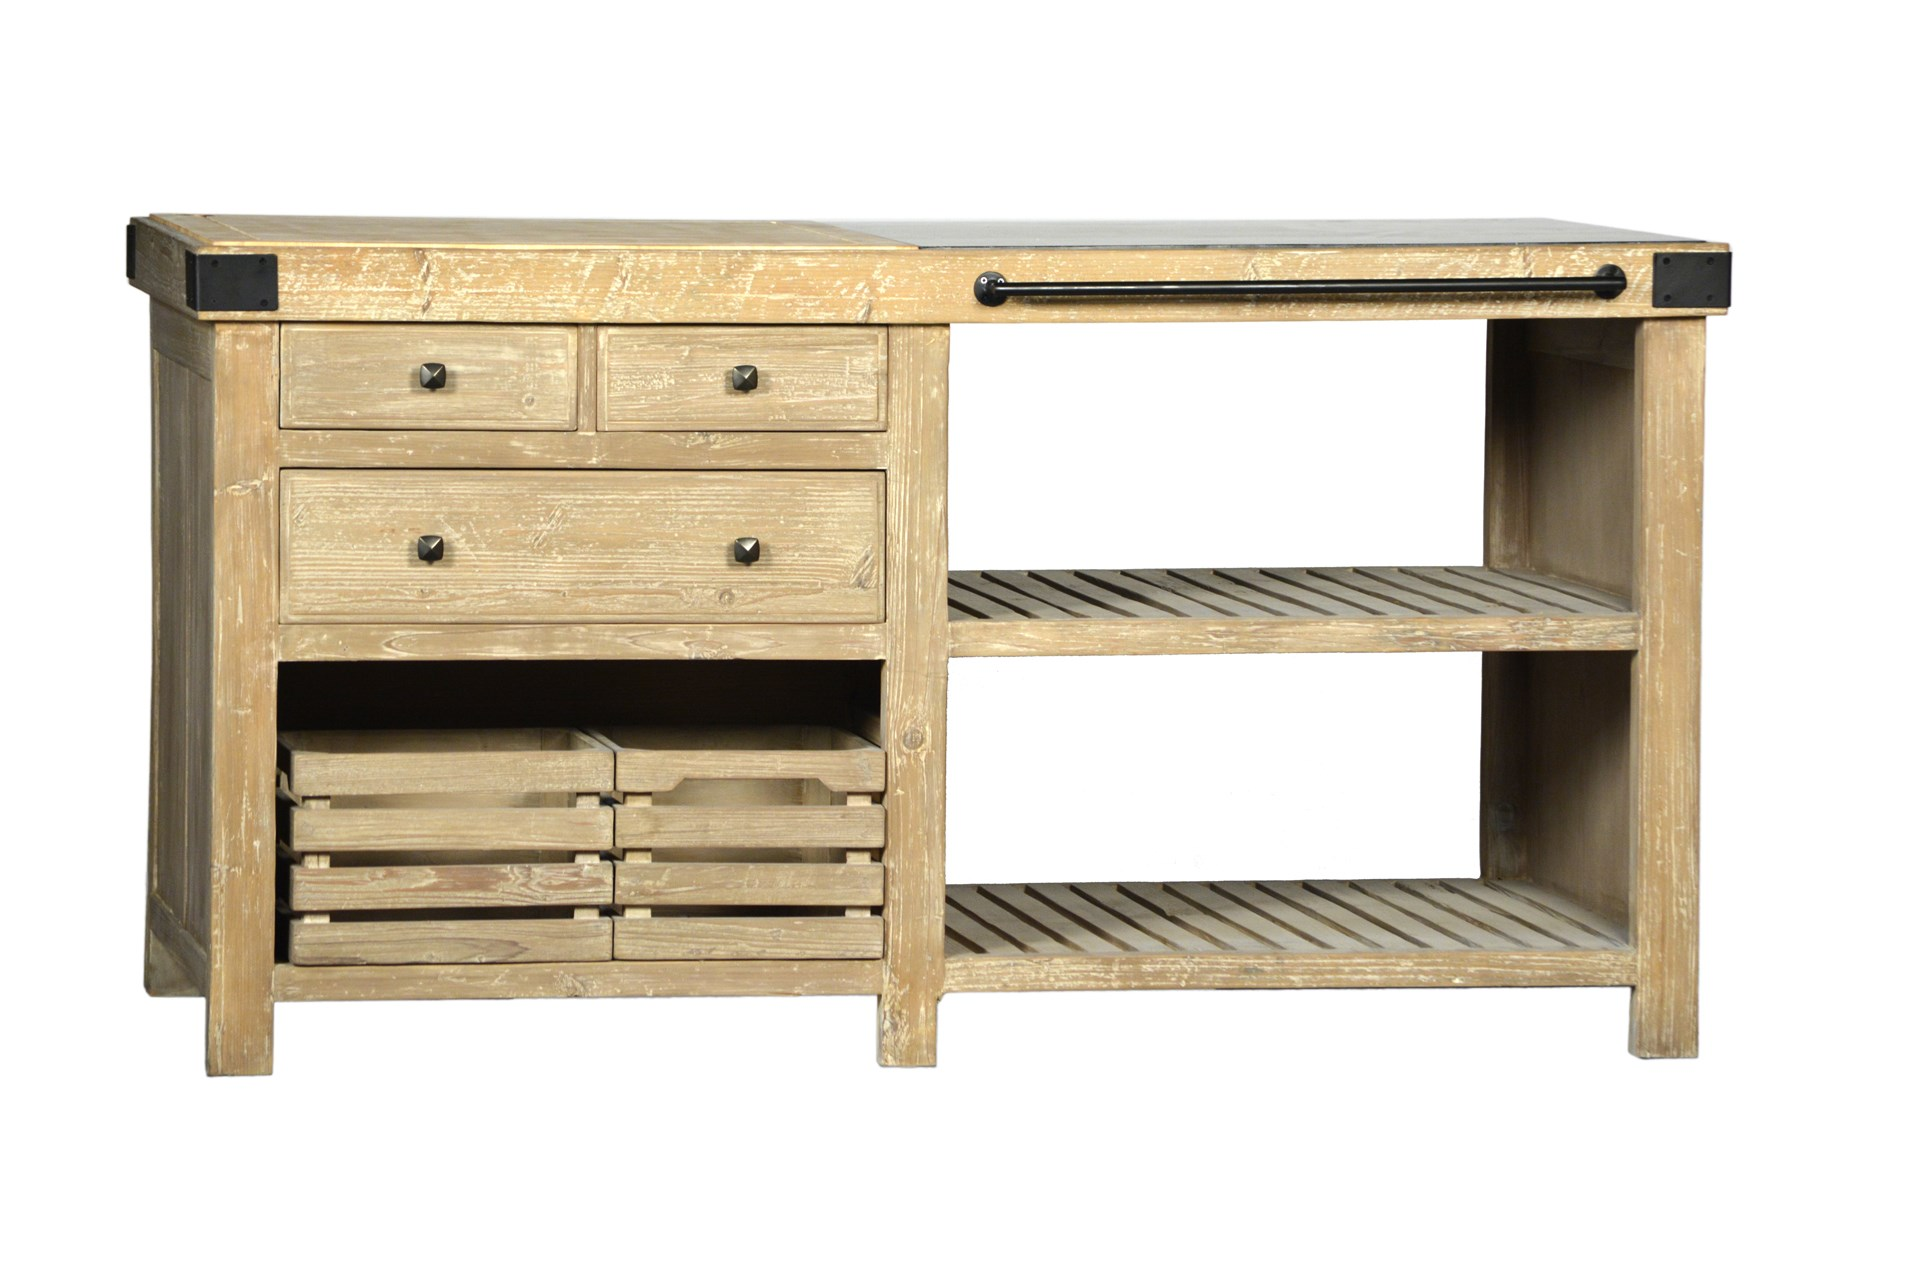 Blue Stone Kitchen Island Qty 1 Has Been Successfully Added To Your Cart